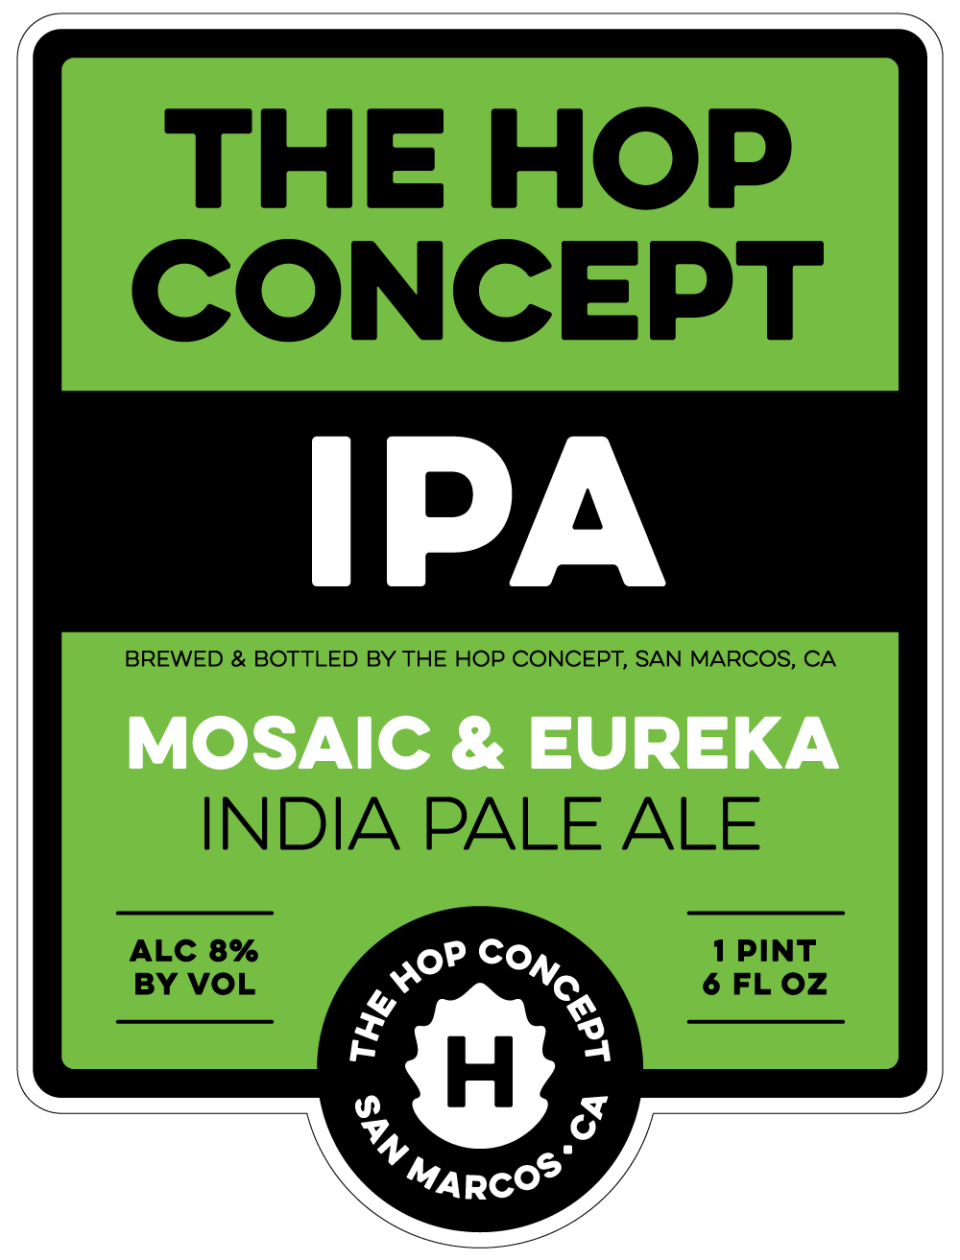 The Hop Concept Mosaic and Eureka